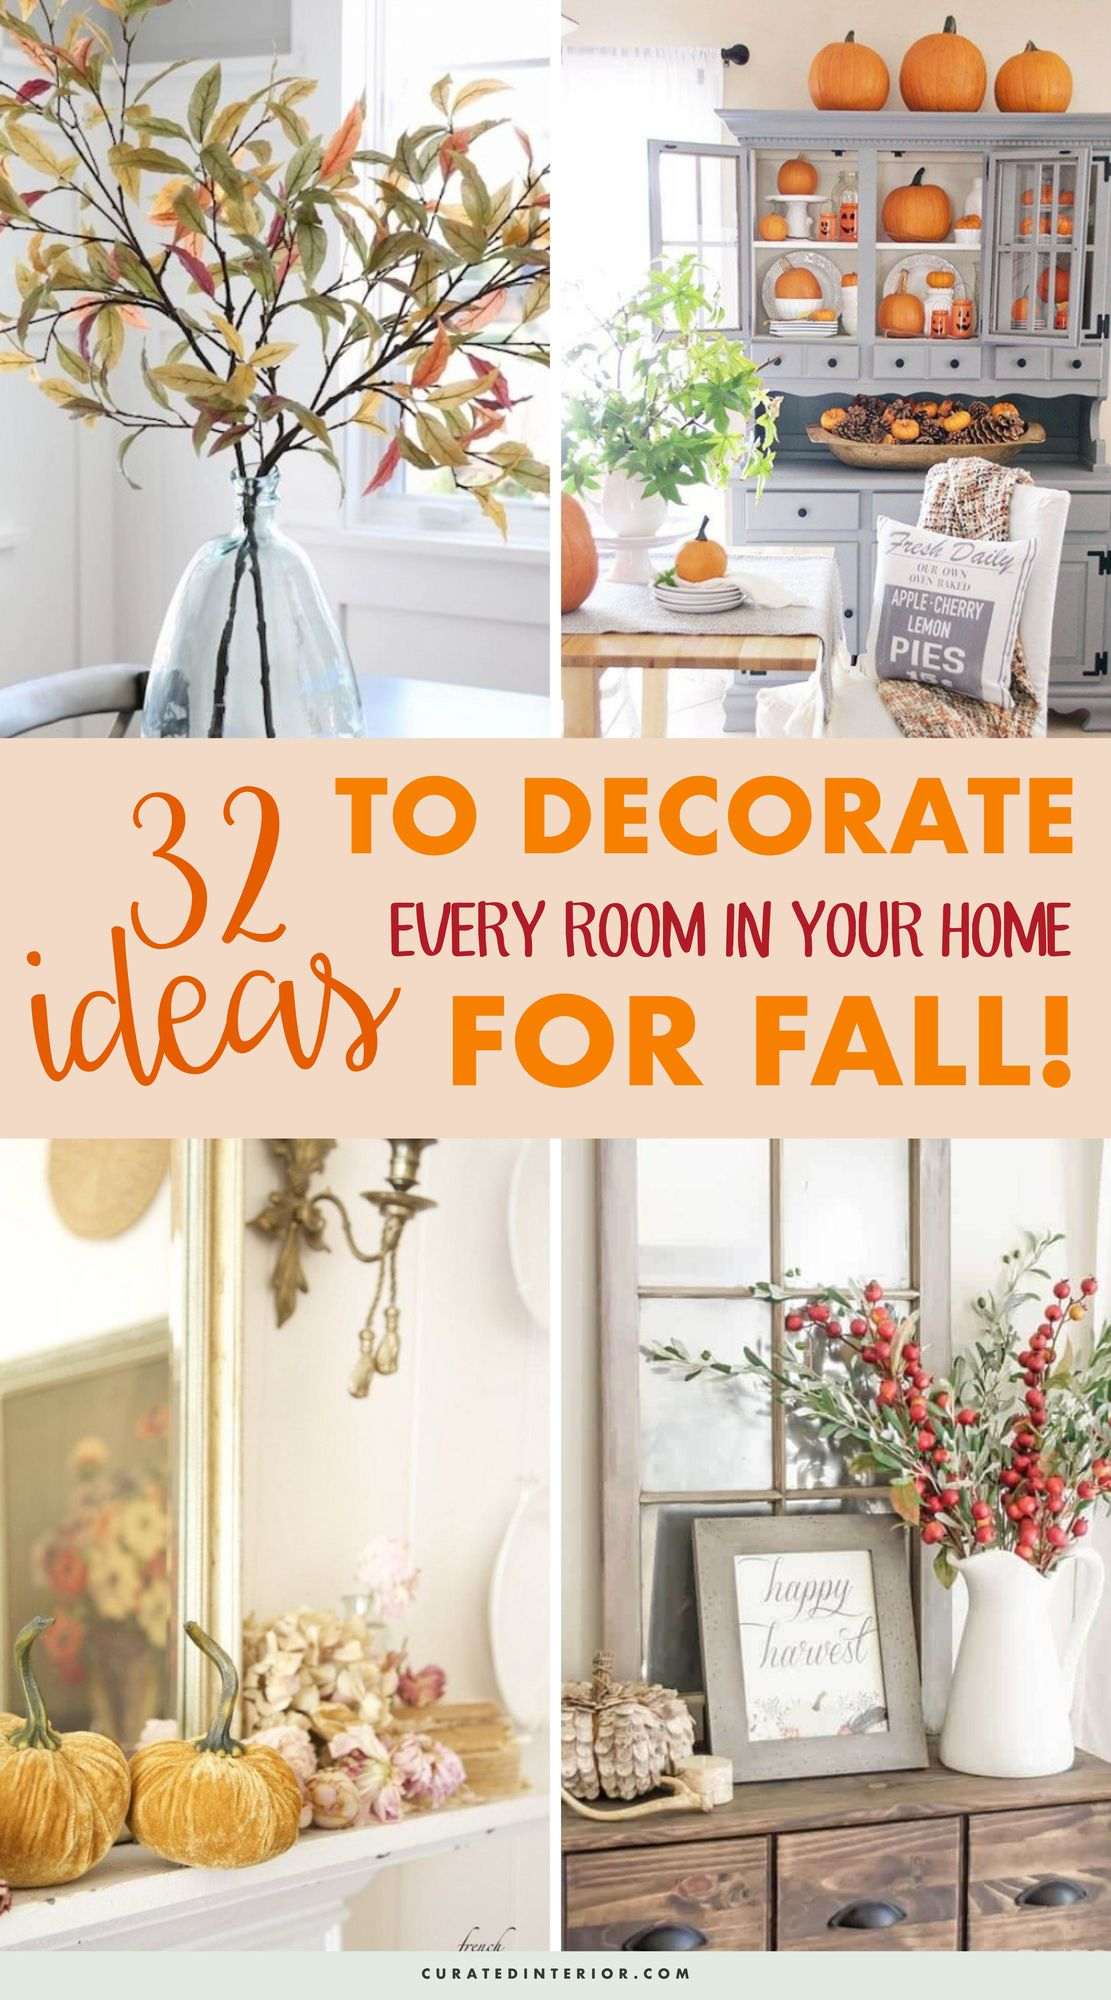 32 Ideas To Decorate Every Room In Your Home For FALL #FallDecor #FallHomeDecor #FallDecorIdeas #FallHome